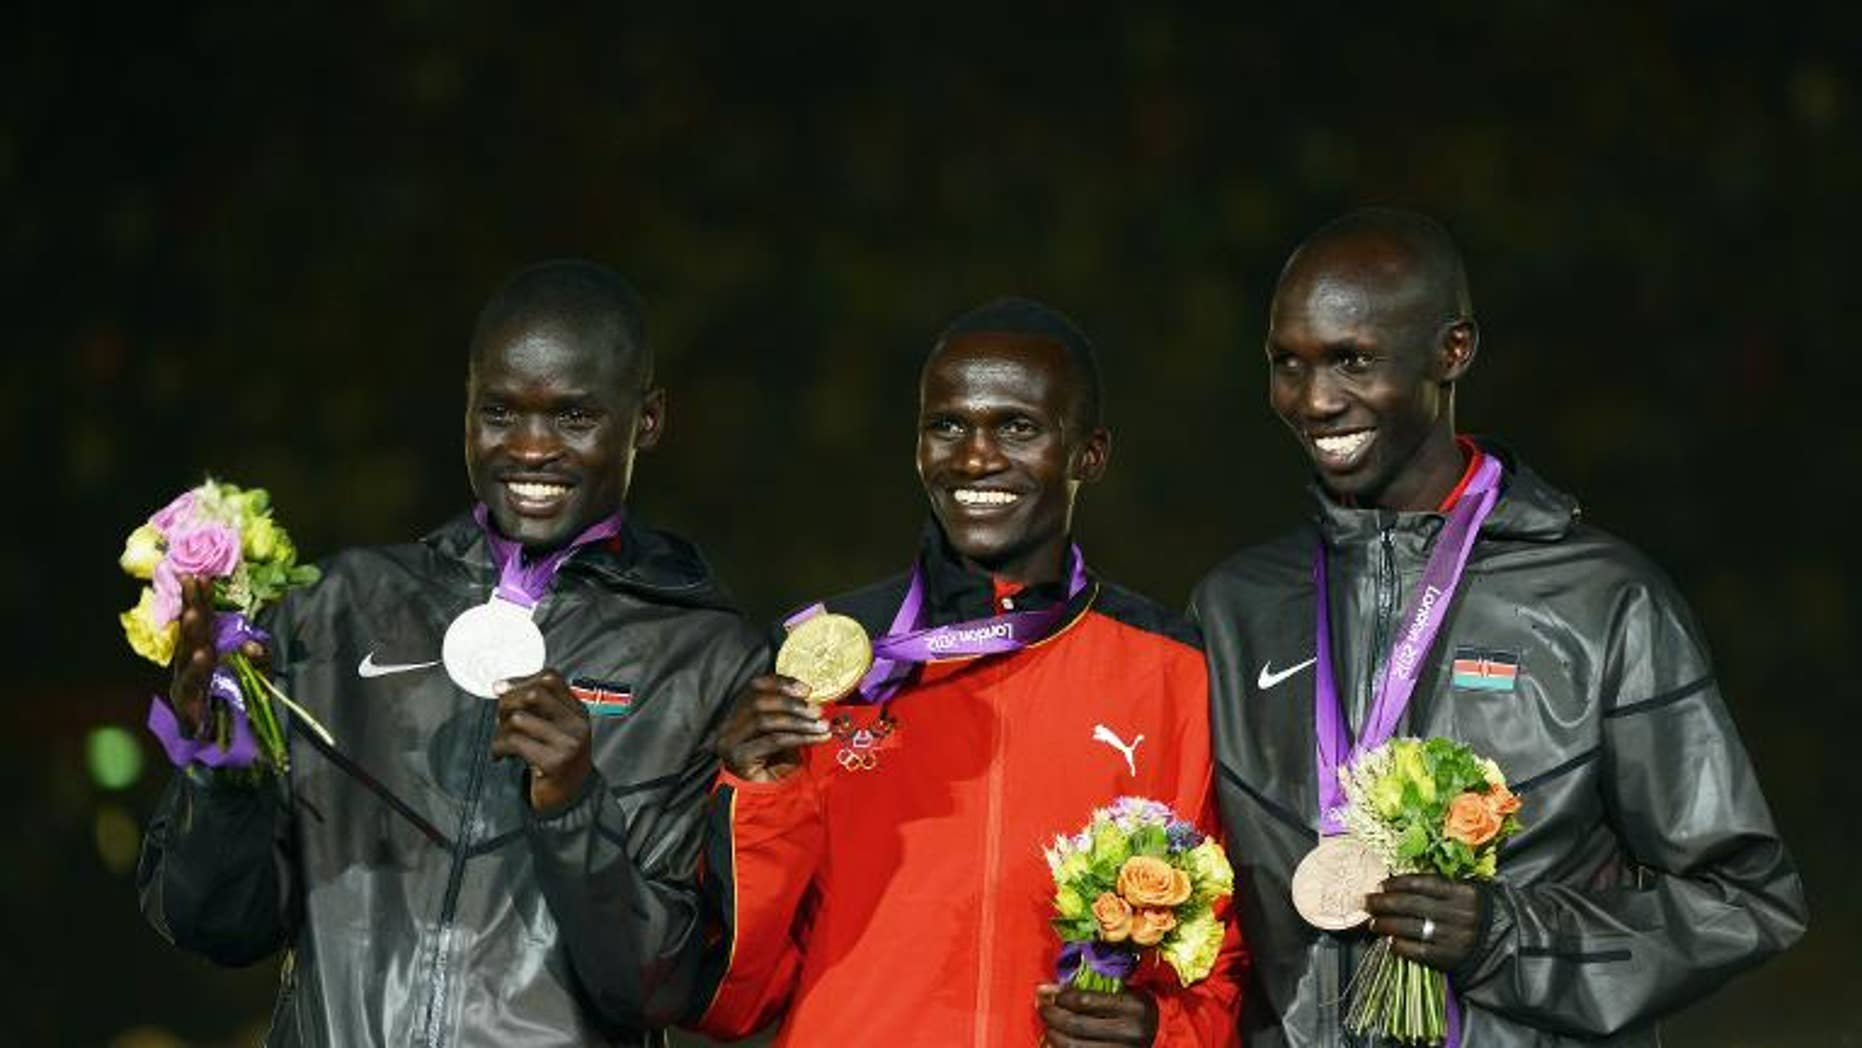 Uganda??'s gold medalist Stephen Kiprotich (centre), Kenya'??s silver medalist Abel Kirui (left) and bronze medalist Wilson Kipsang Kiprotich during the closing ceremony of the 2012 London Olympic Games on August 12